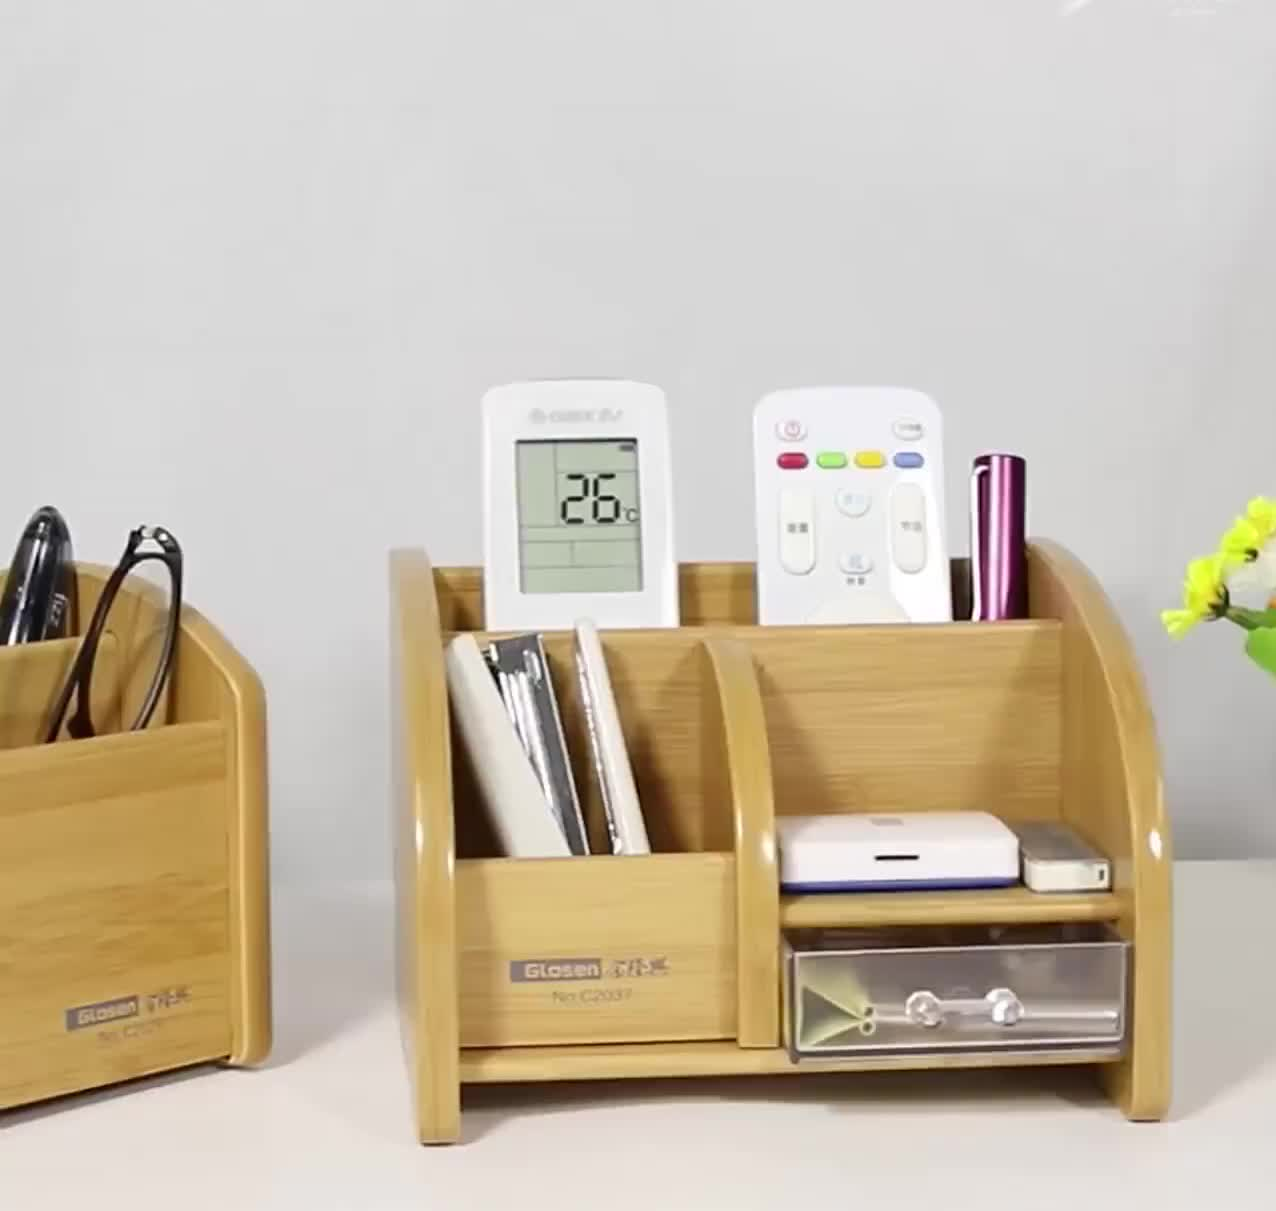 Square Bamboo Office Pen Pencil Holder for Desk Office Desktop Storage Organizer With Drawers